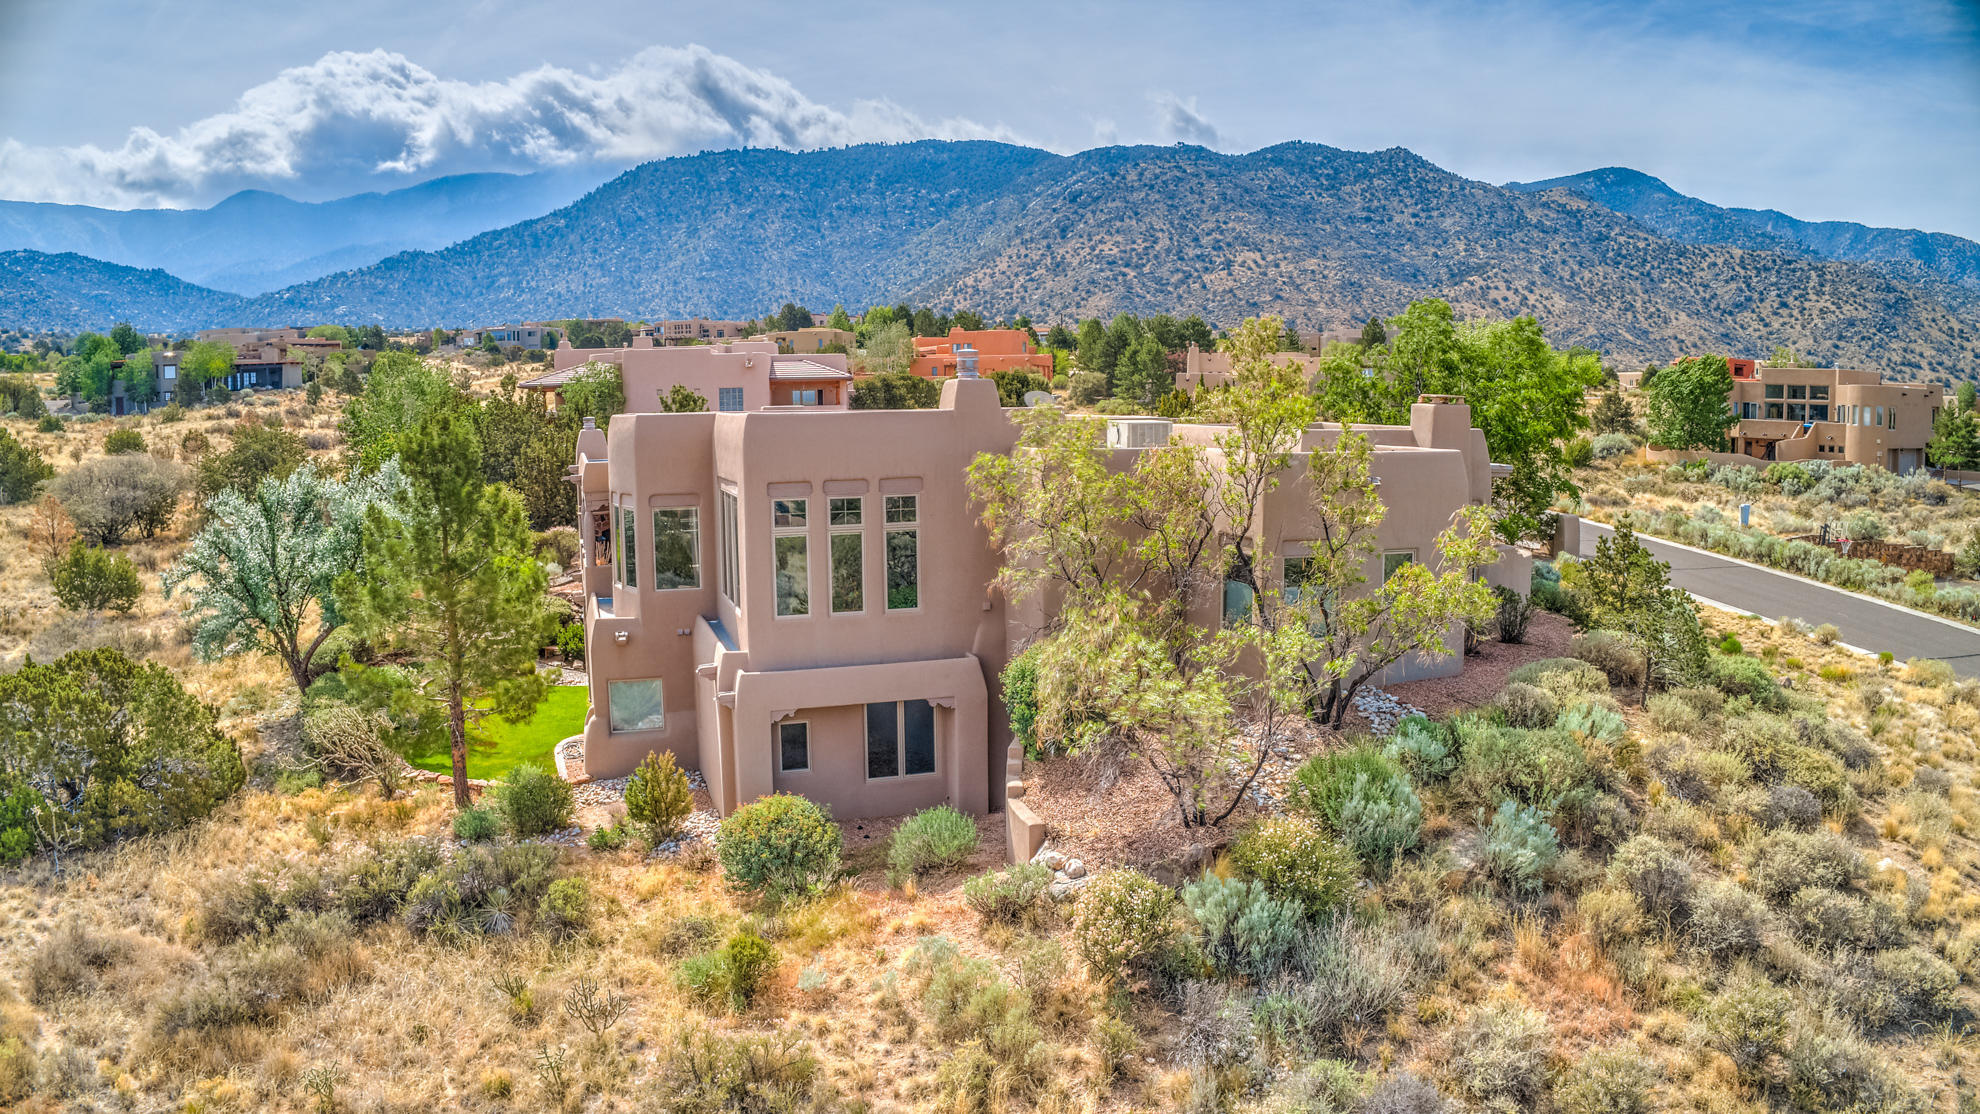 4 Bed4 Bath Home In Albuquerque For 1000000